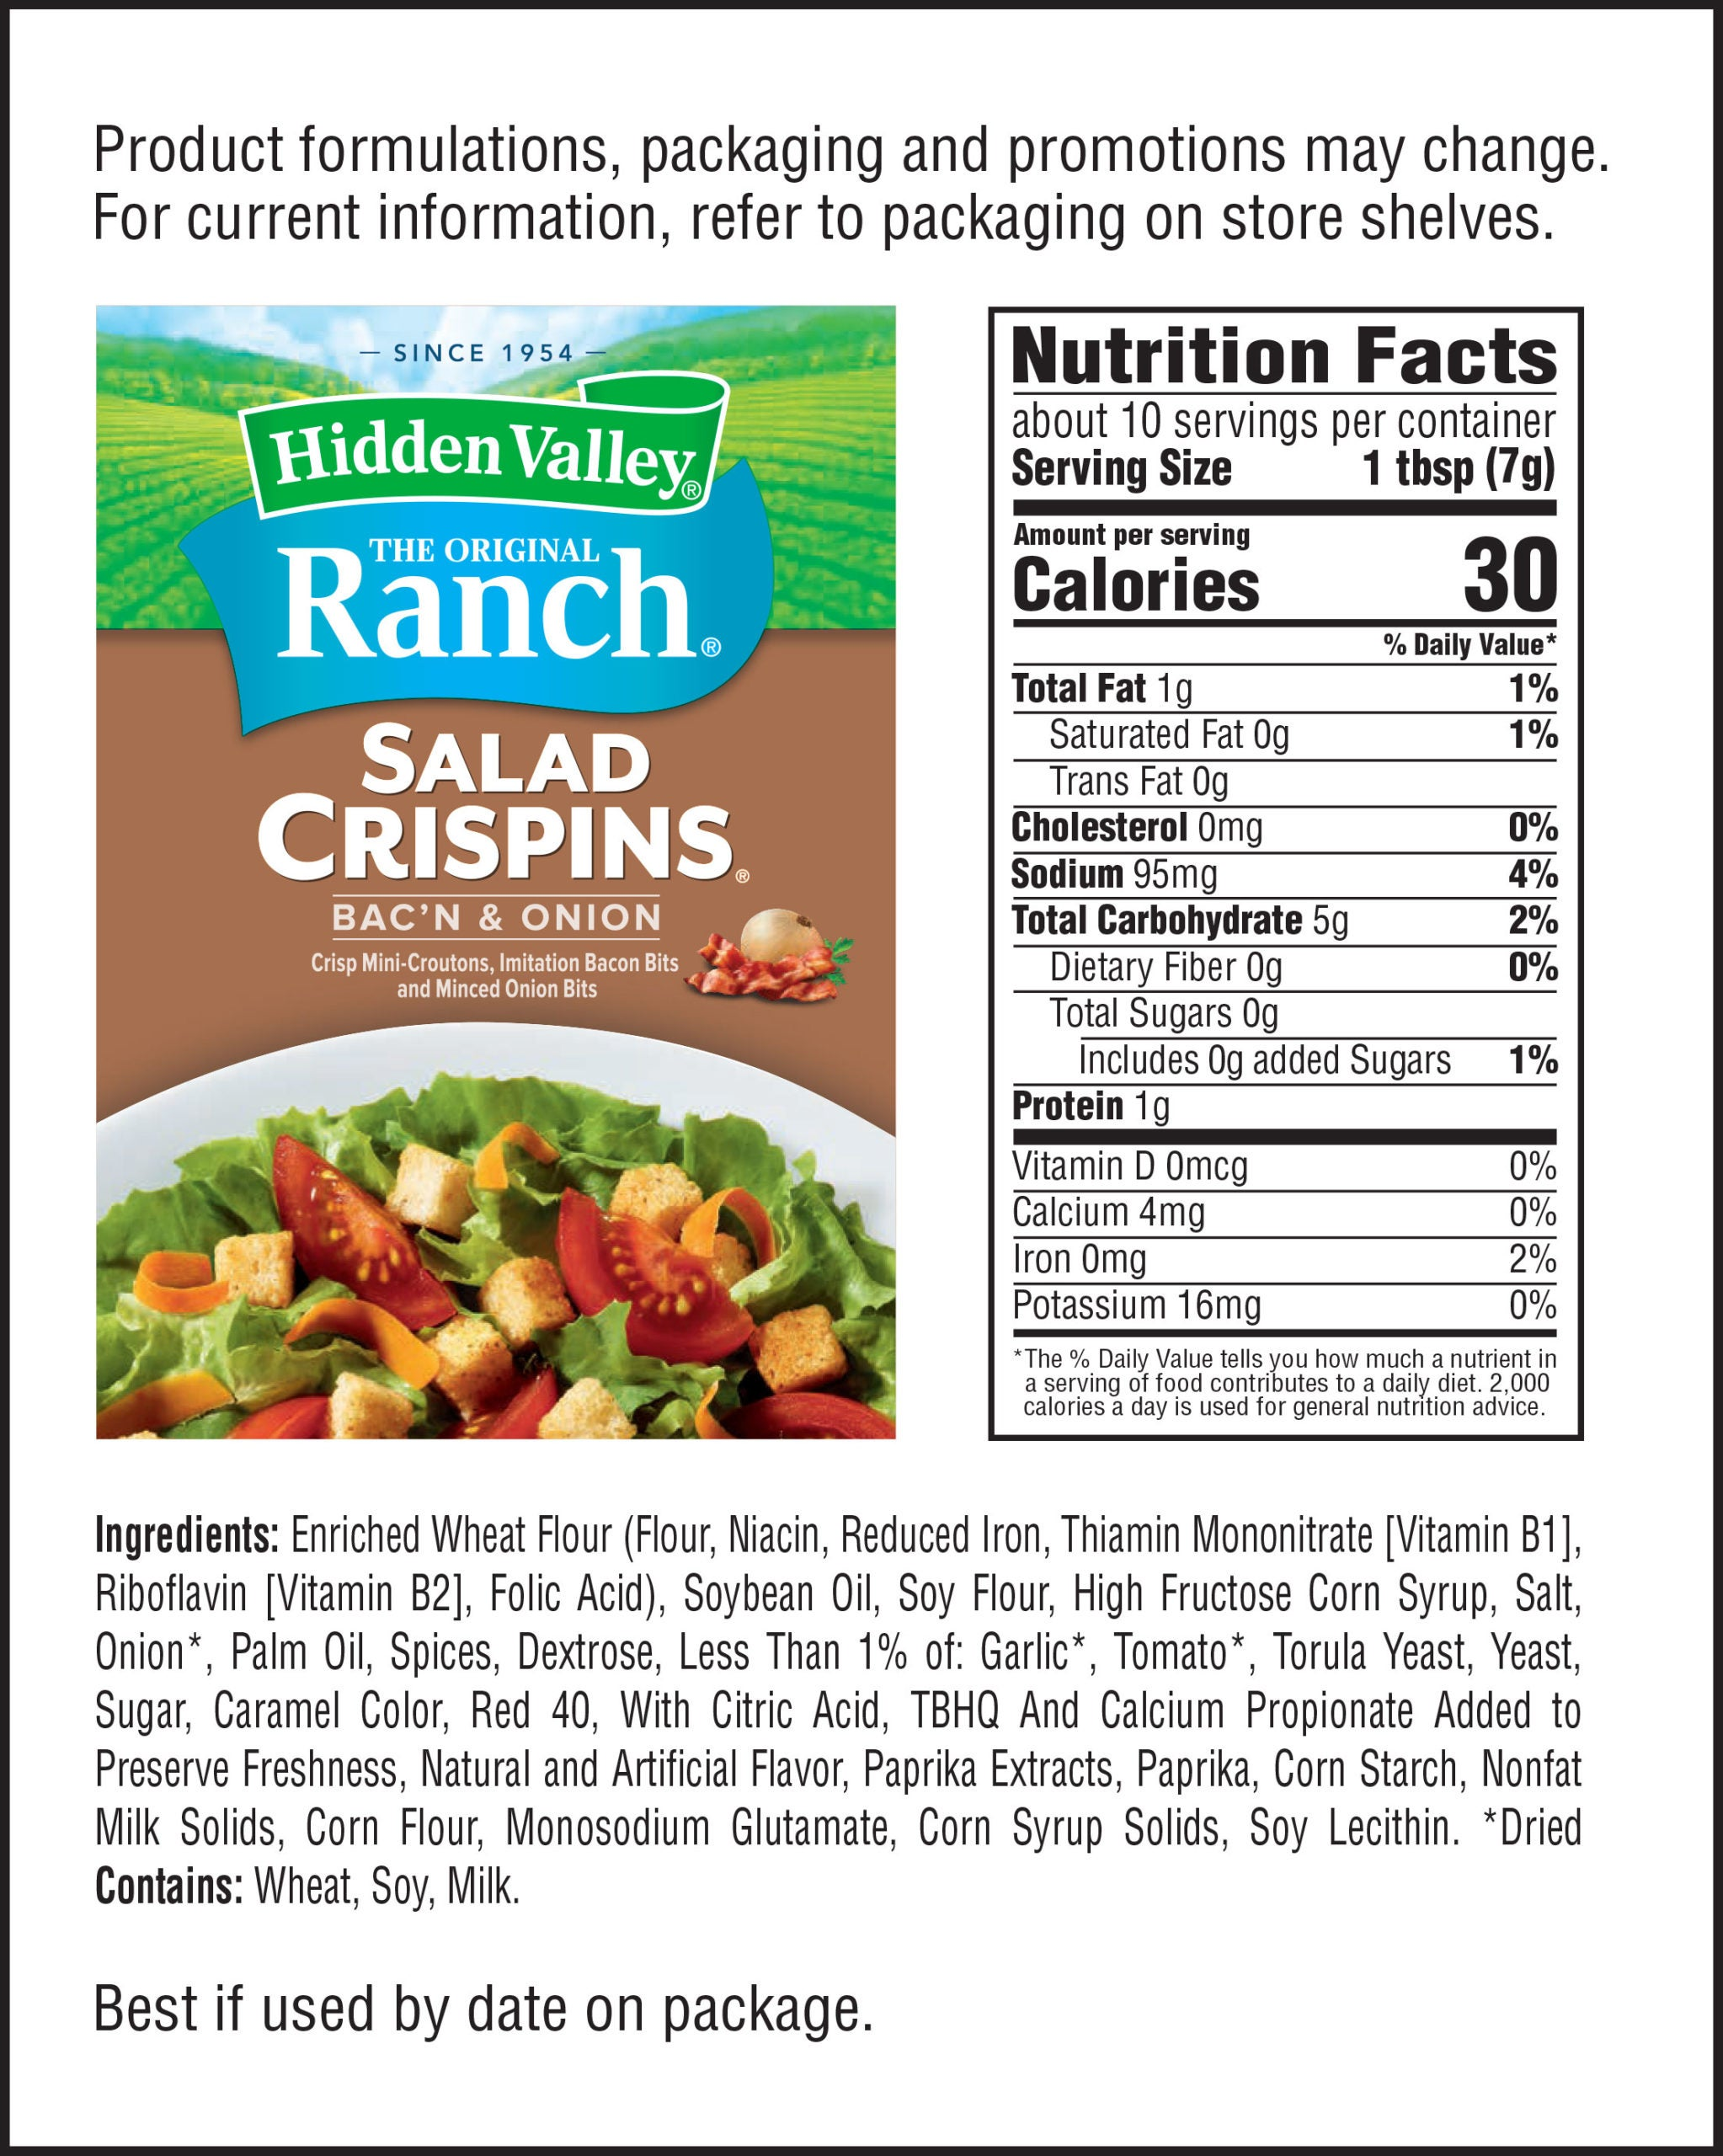 Bac'n & Onion Salad Crispins® nutritional facts